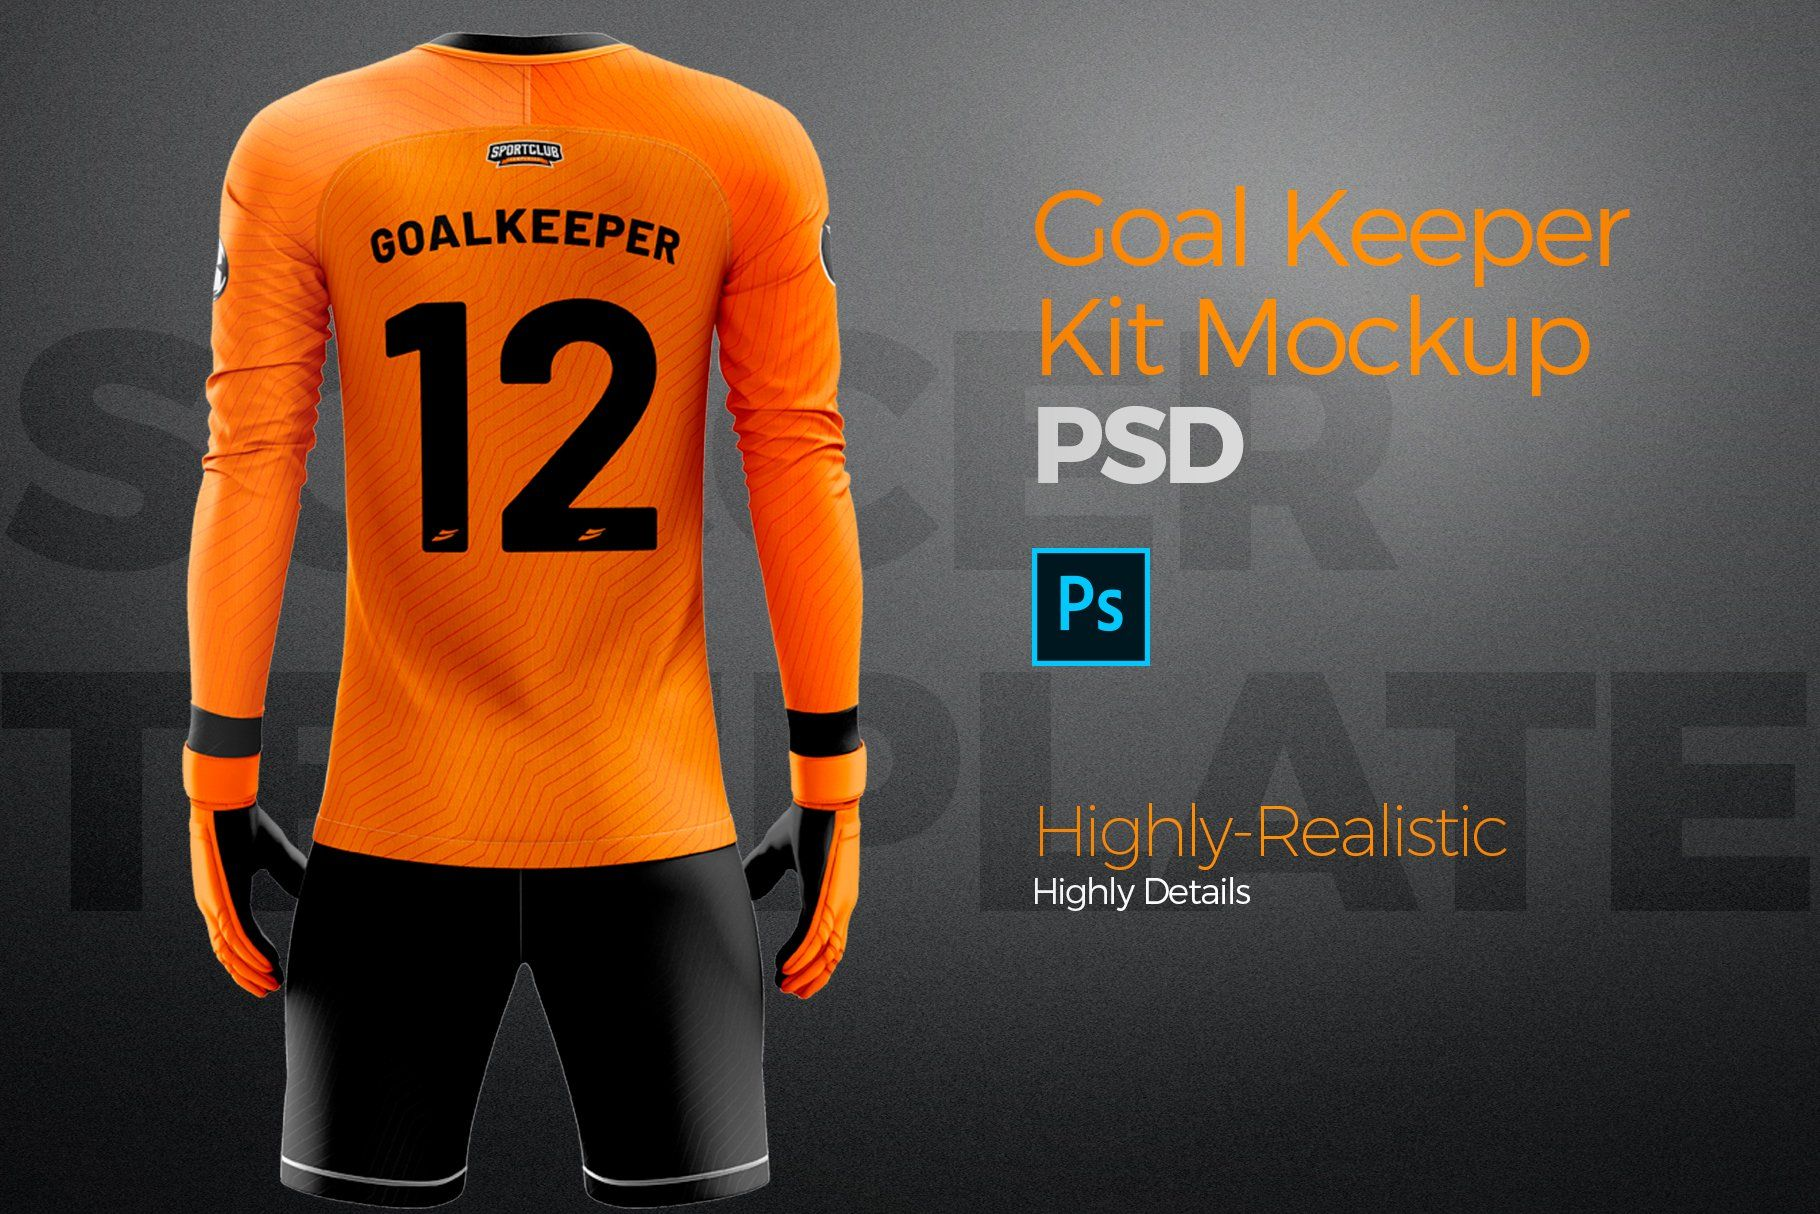 Download Goalkeeper Kit Mockup Psd Template Ad Spon Front Template Display Efficient Mockup Psd Goalkeeper Kits Psd Templates